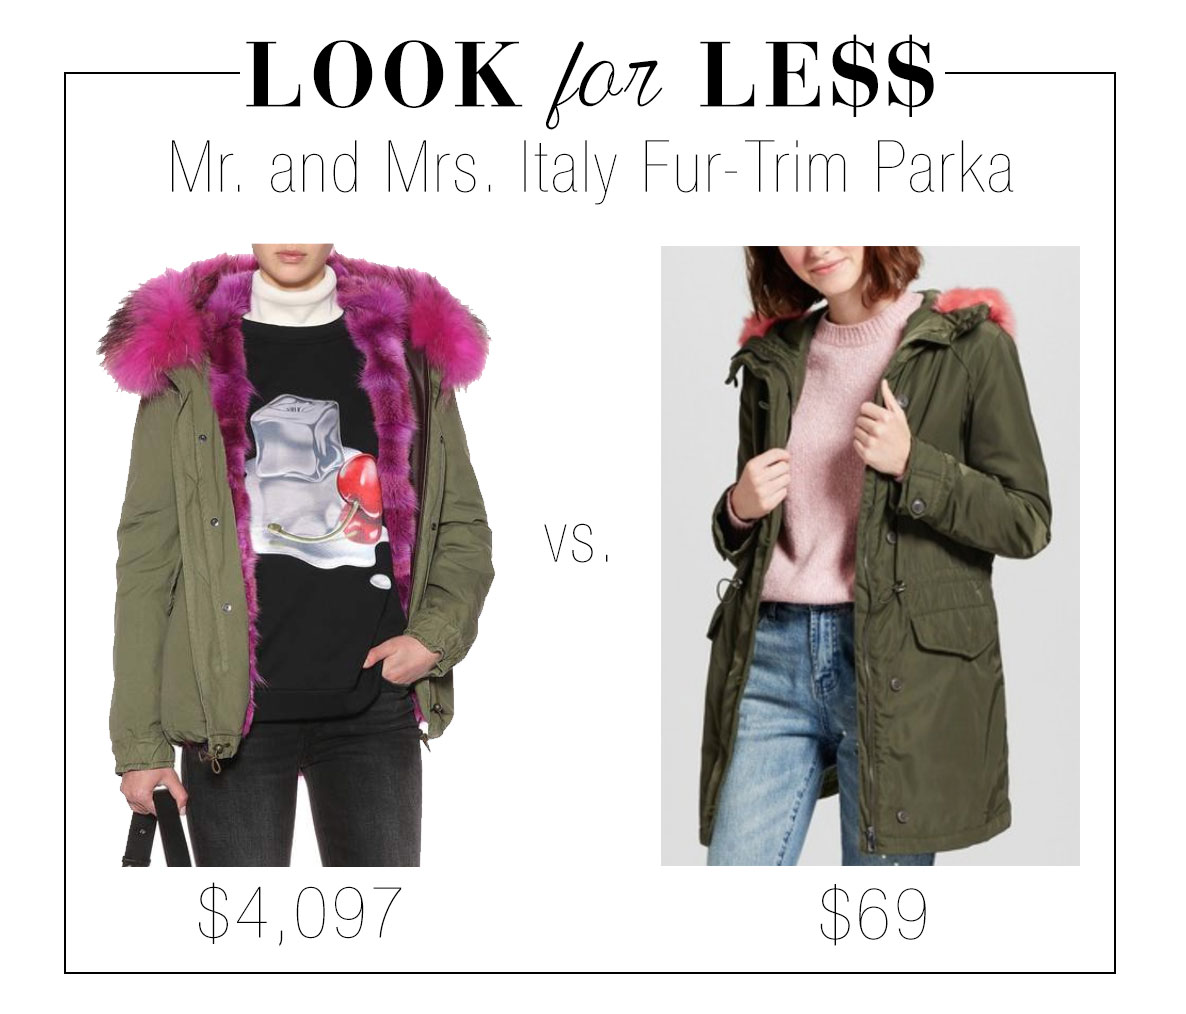 Mr. and Mrs. Italy pink fur trim parka look for less